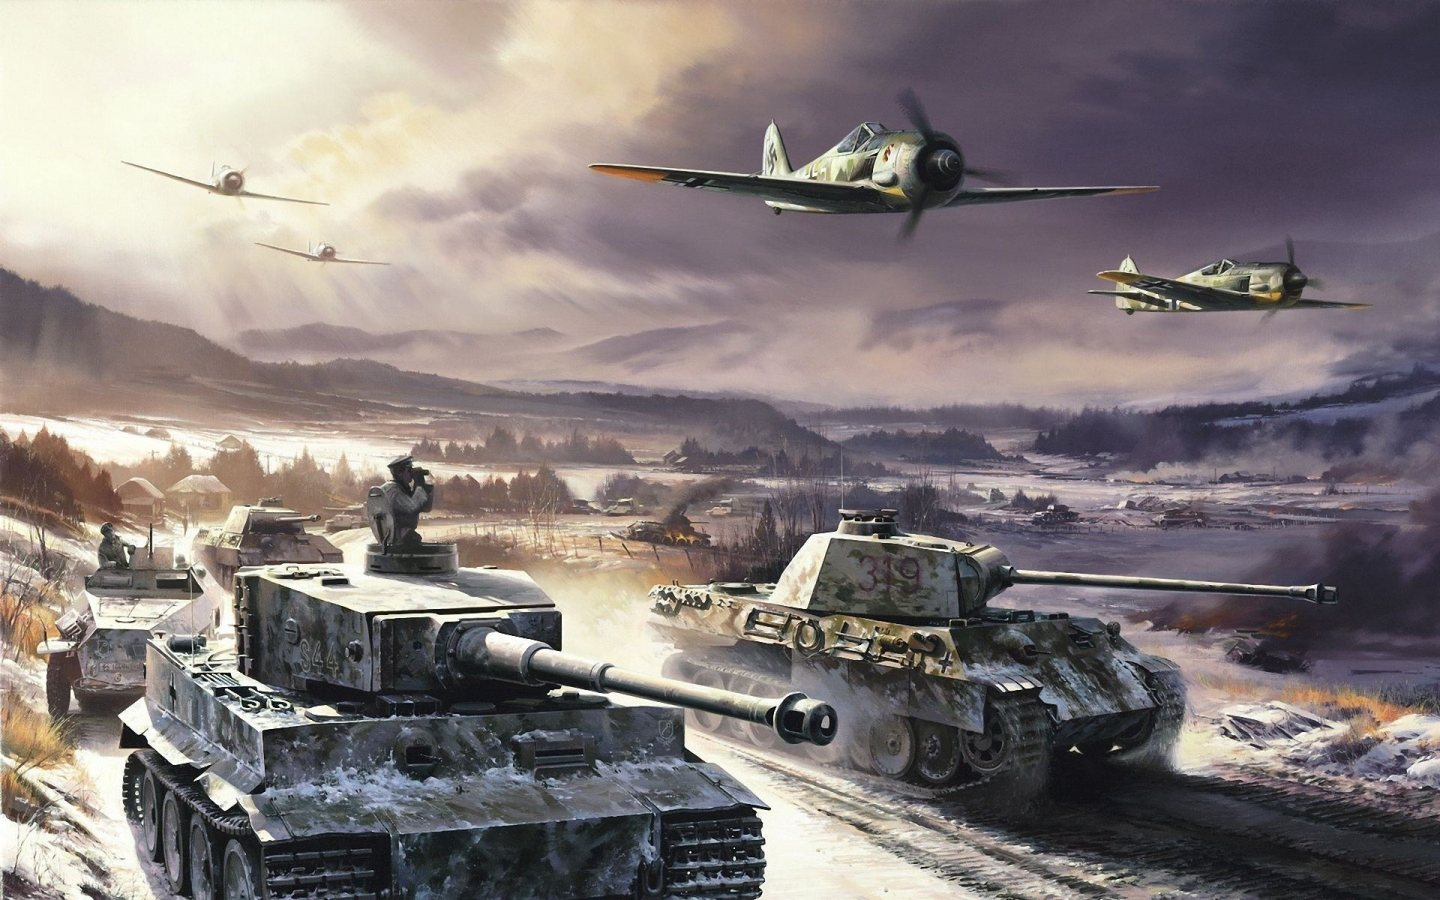 Free Download World War 2 Wallpaper 12273 Hd Wallpapers In